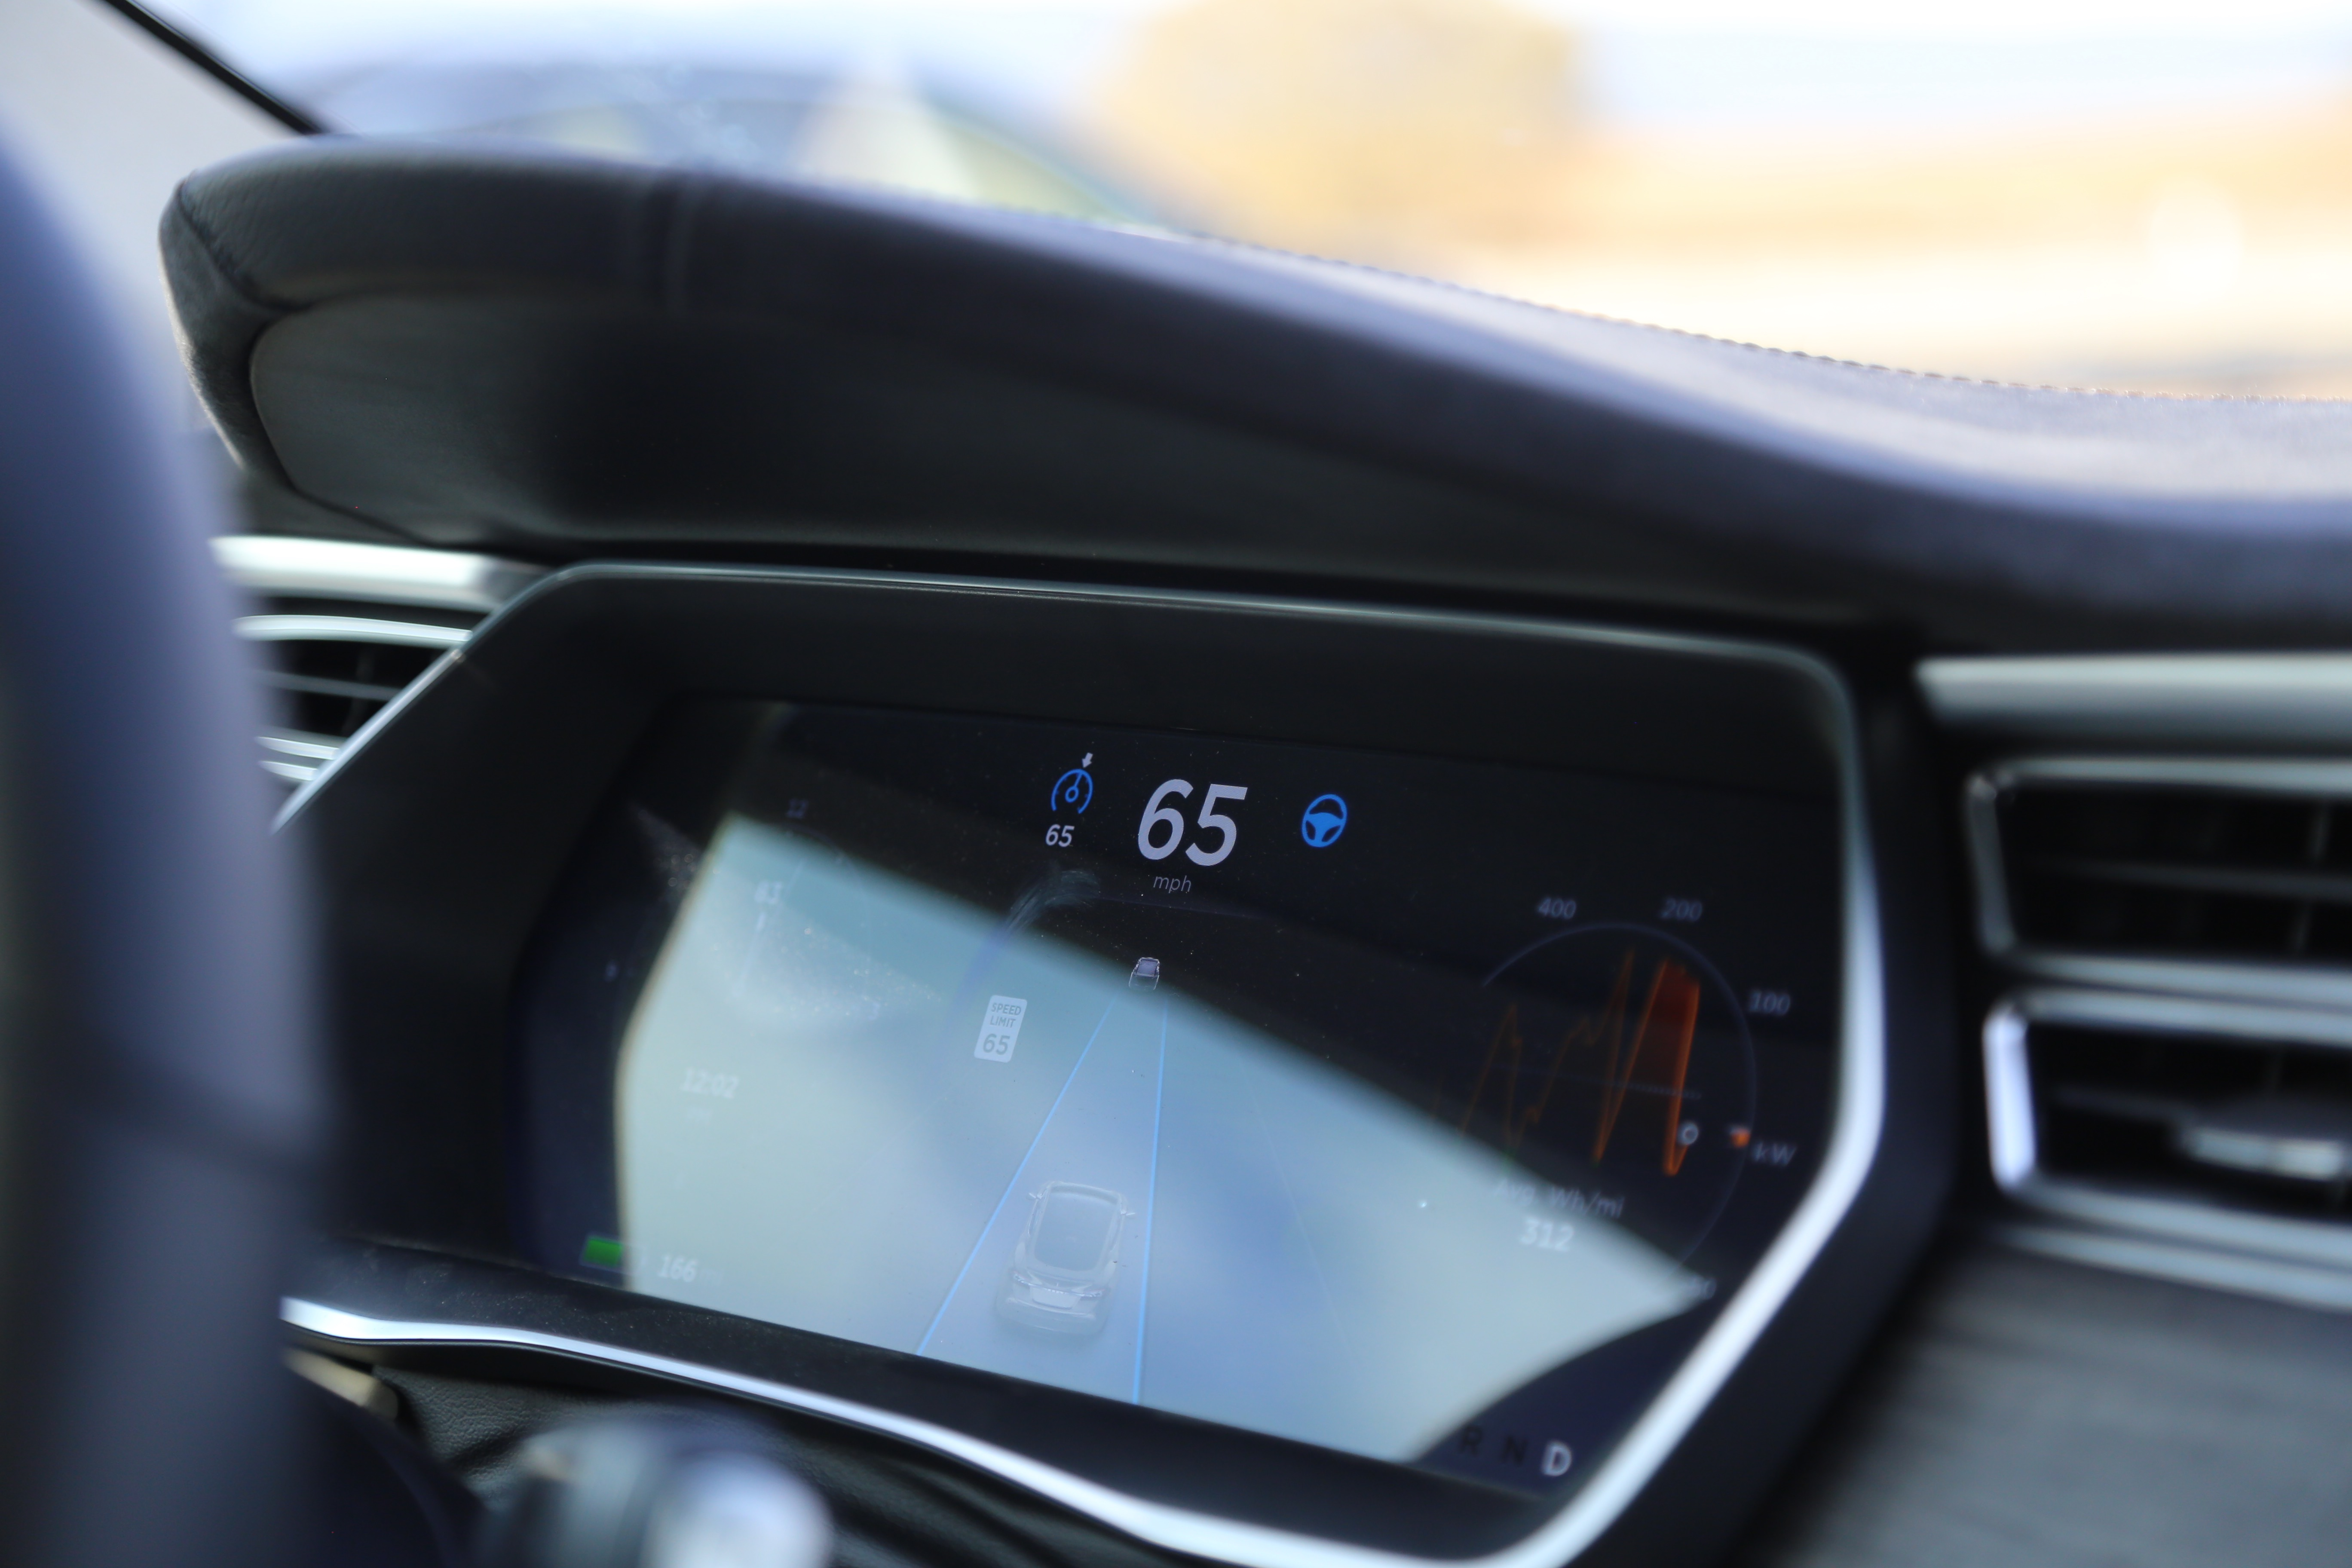 Tesla's autopilot manages speed by using active, traffic-aware cruise control.